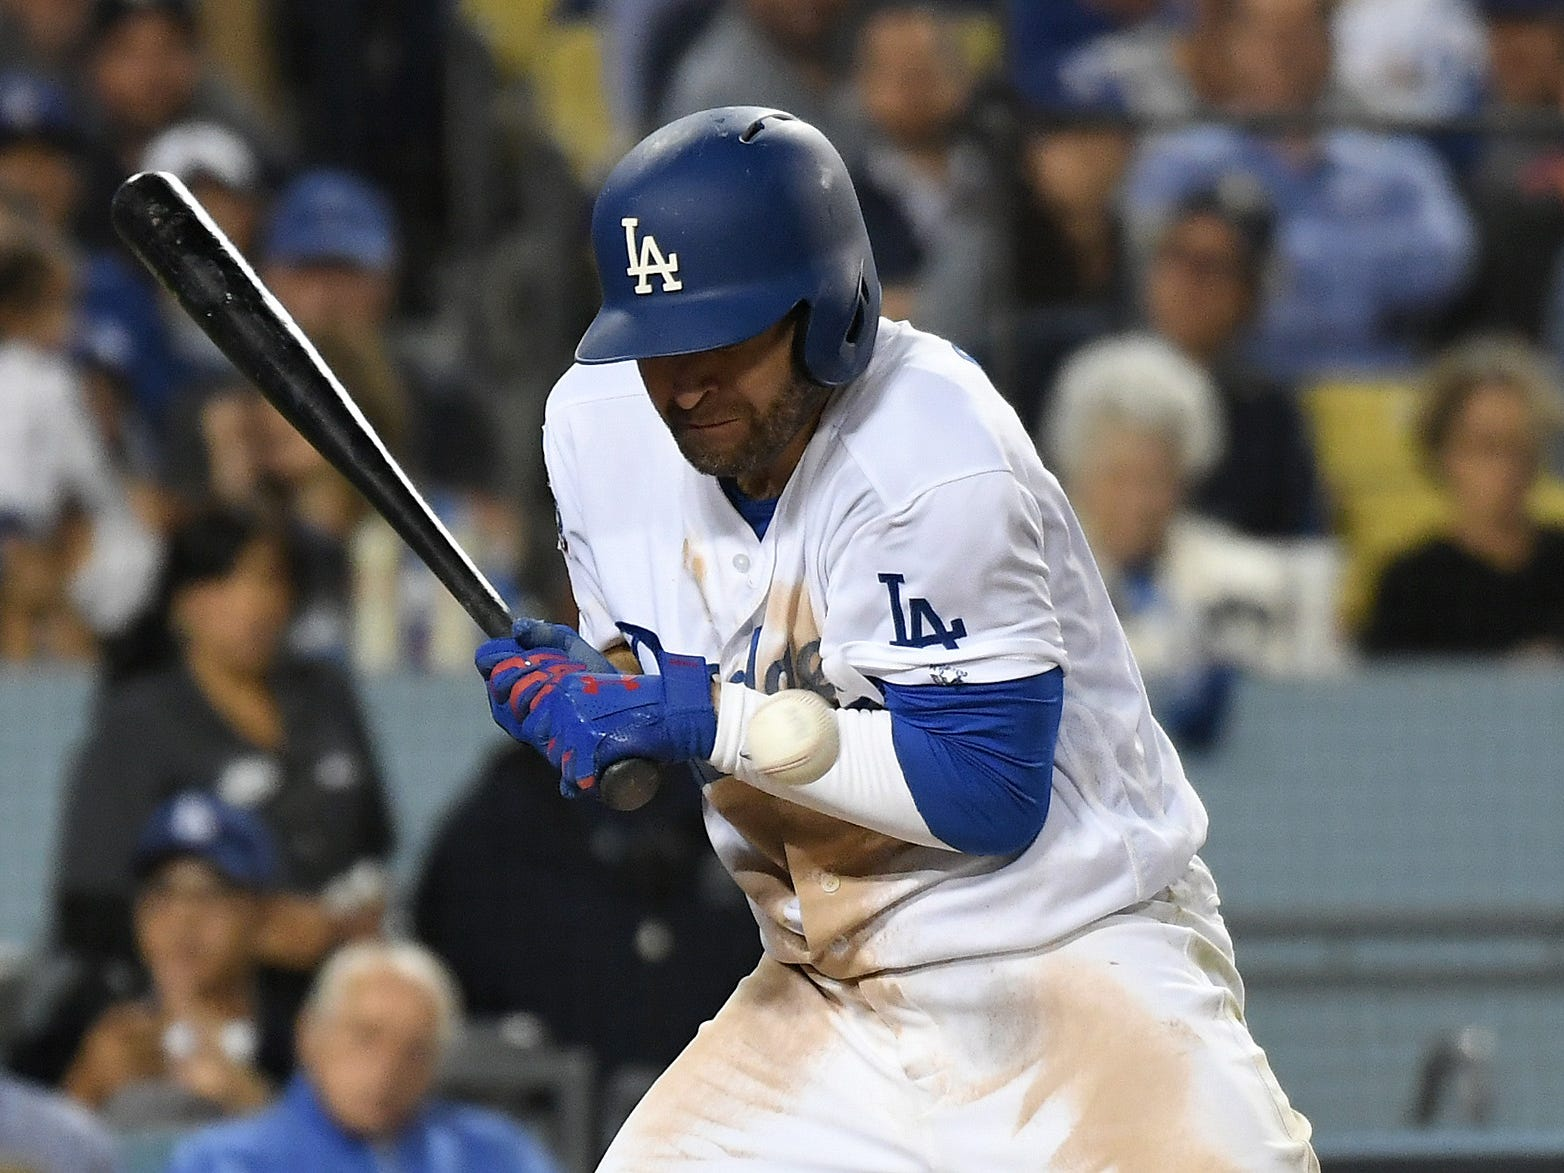 NLCS Game 4: Dodgers second baseman Brian Dozier is hit by a pitch in the sixth inning.